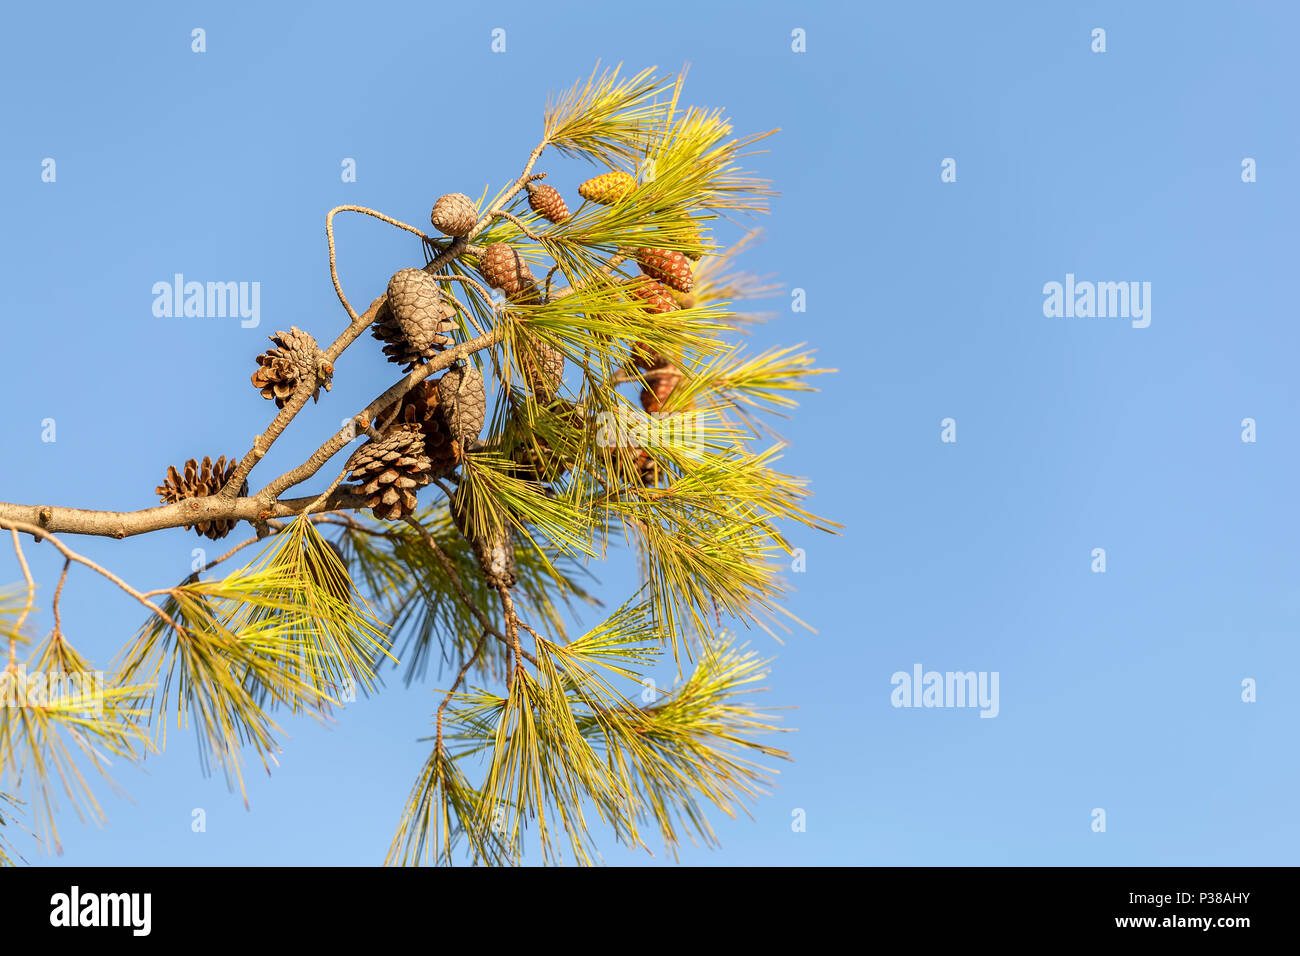 Pine branch with cones on sky background with textspace. - Stock Image